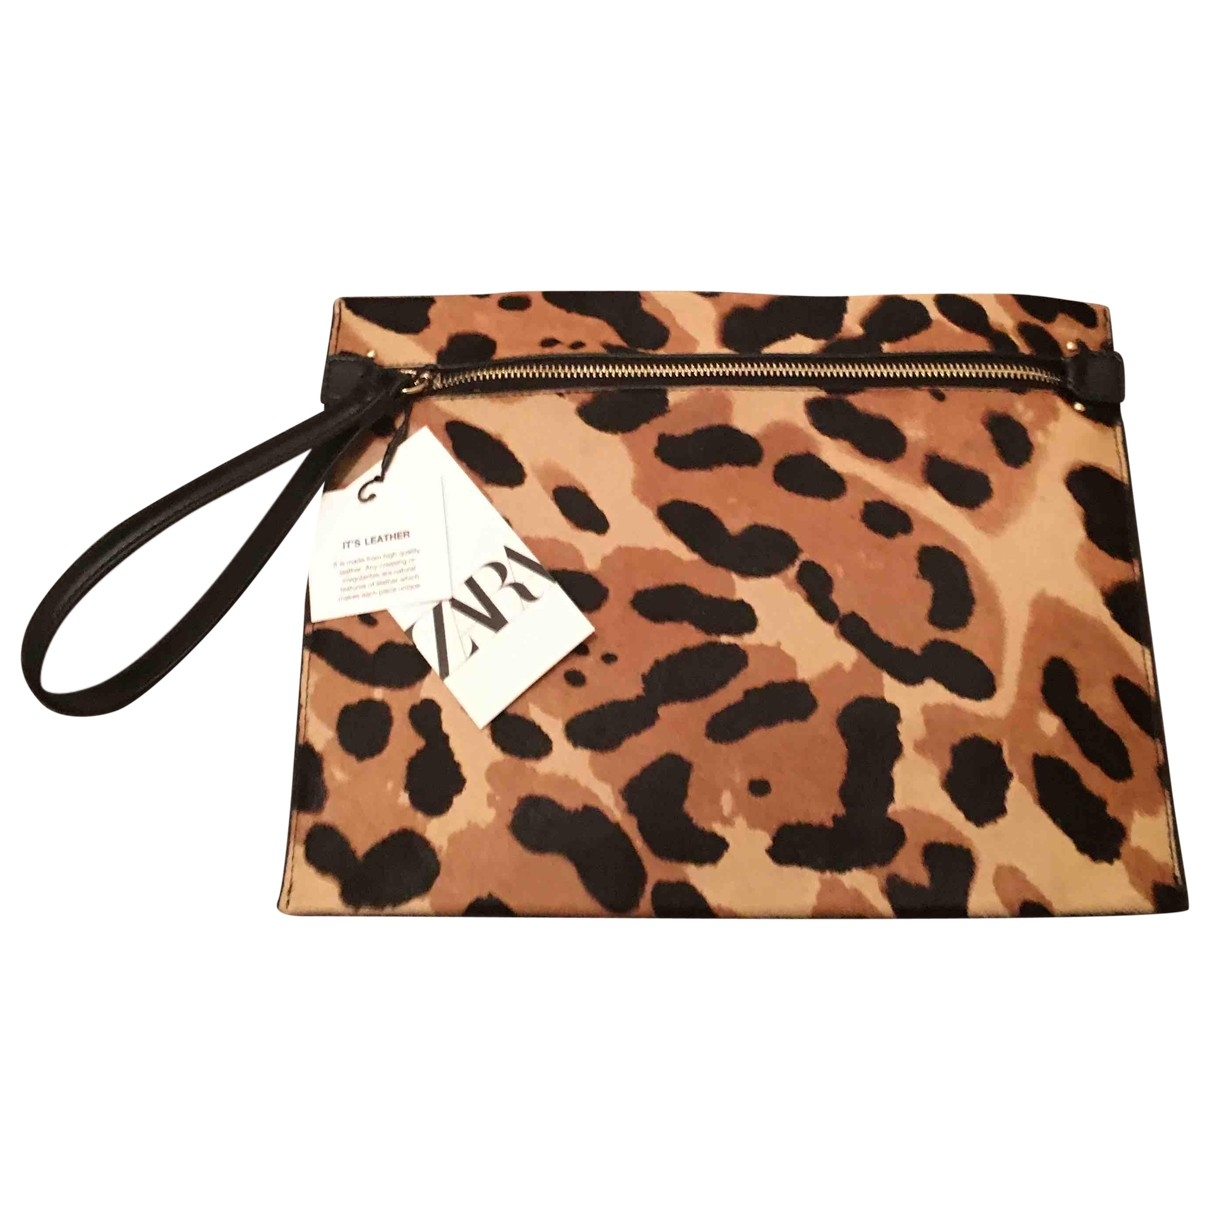 Zara \N Pony-style calfskin Clutch bag for Women \N